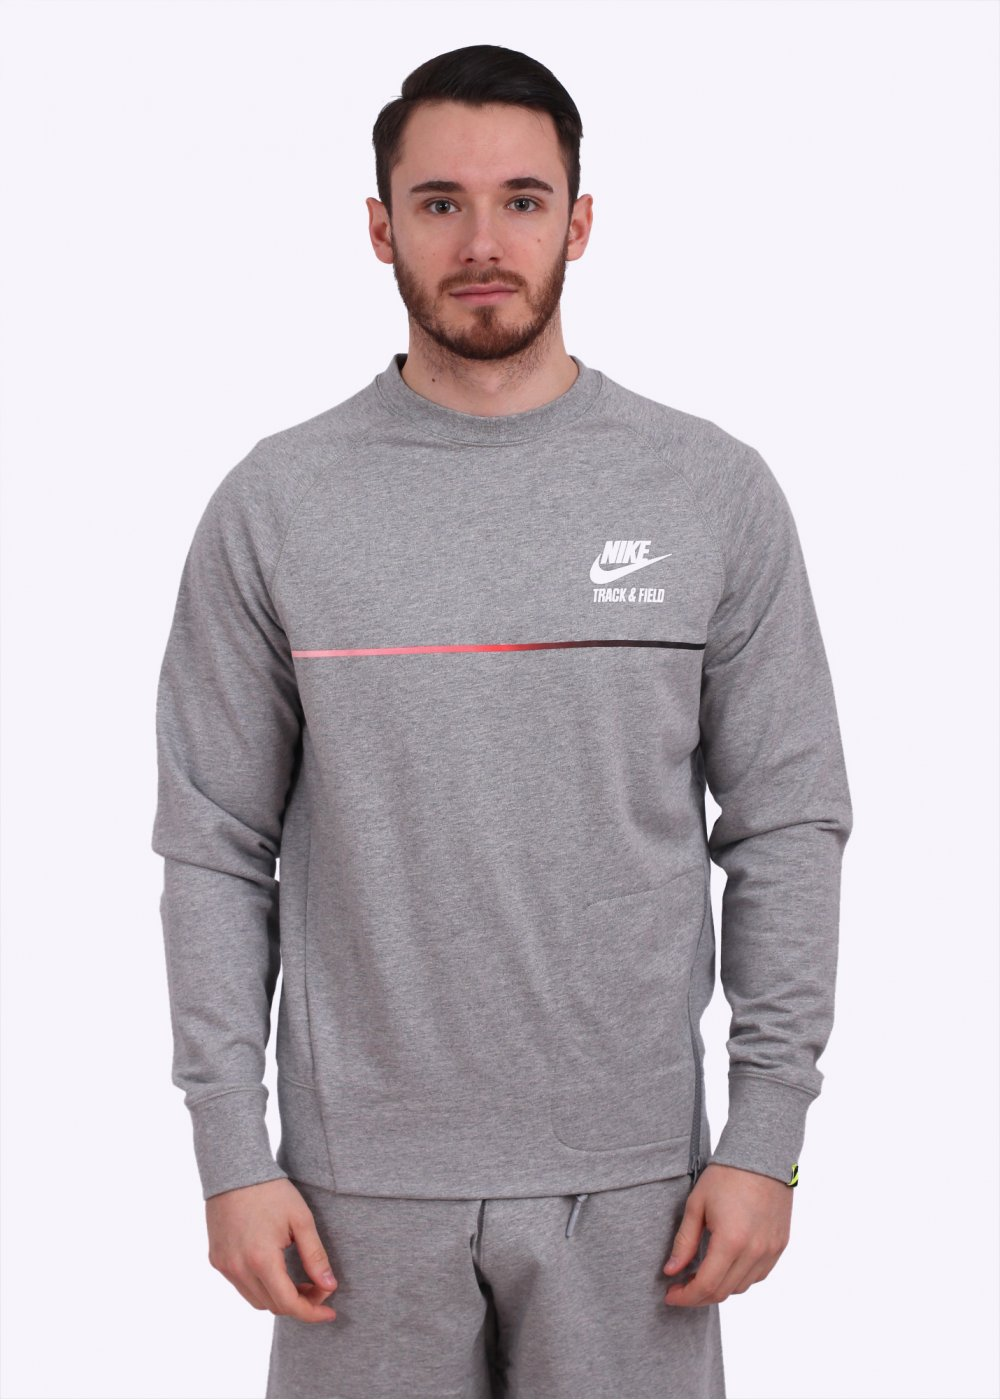 Nike Apparel RU NTF Crew Sweatshirt Dark Grey